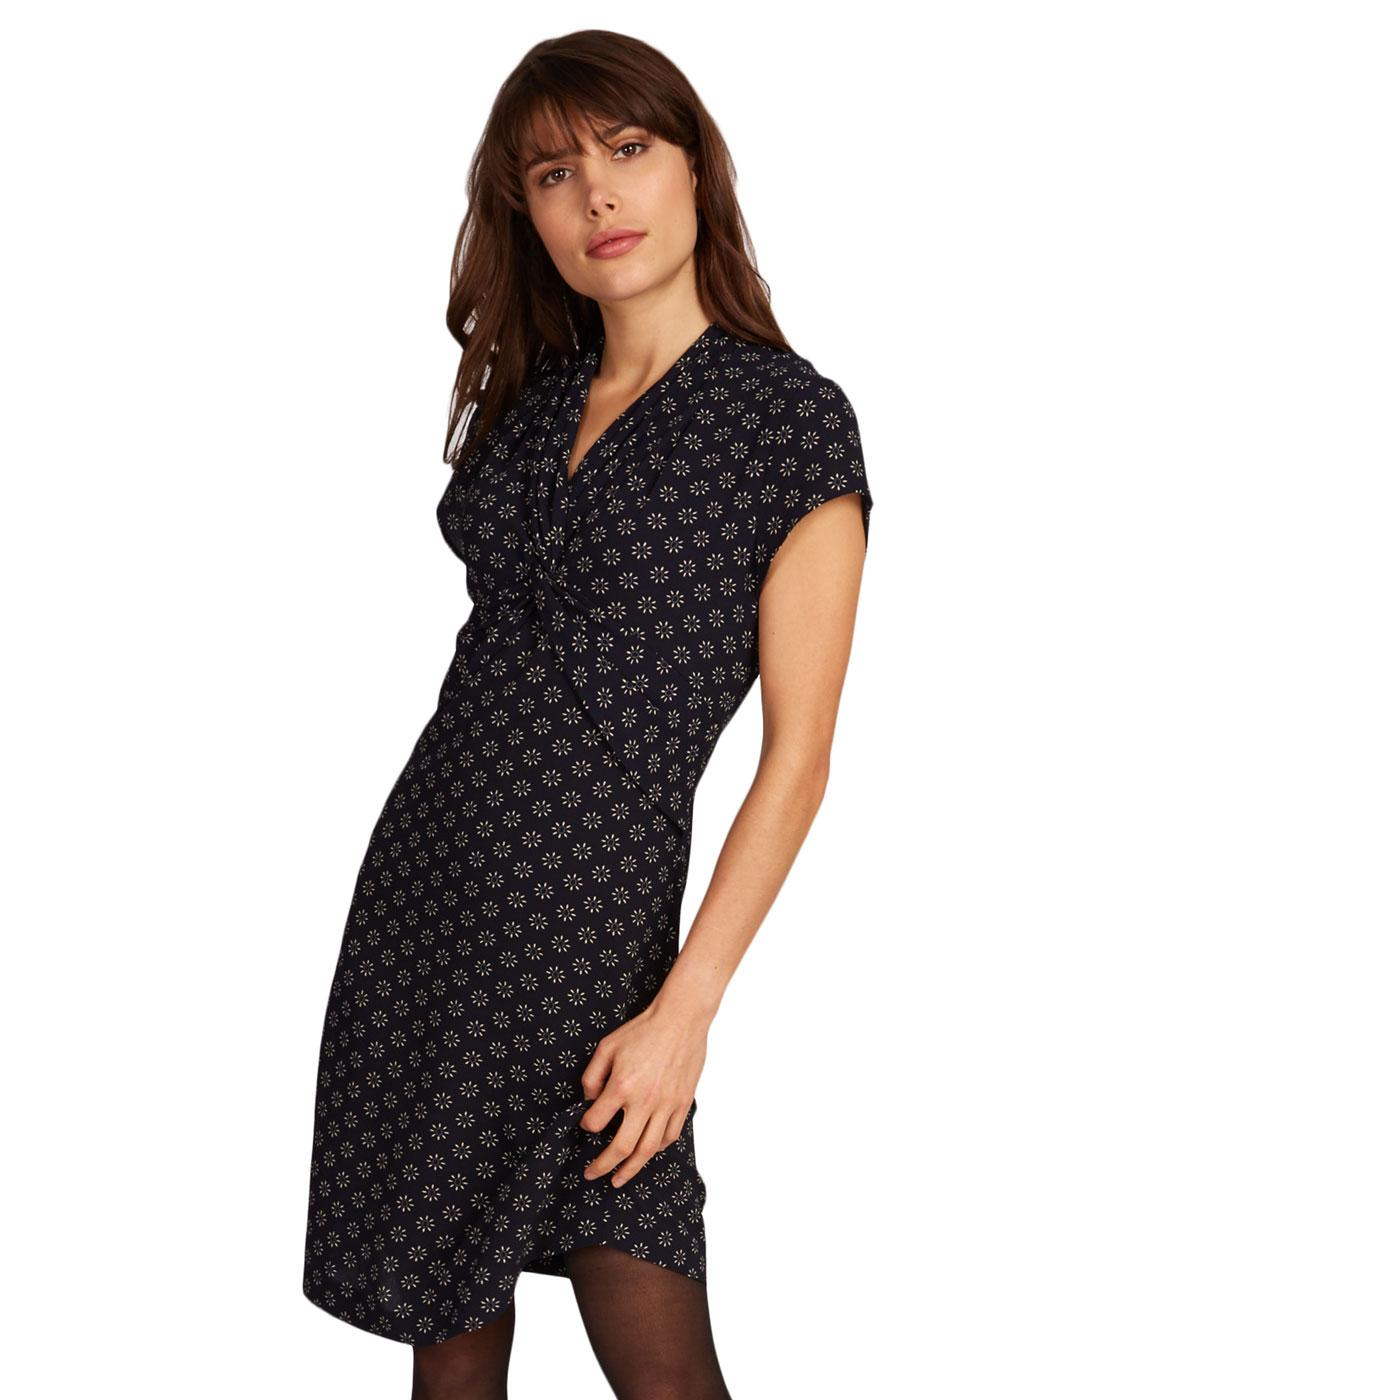 Iseline LOUCHE Retro Patterned Knot Dress In Navy